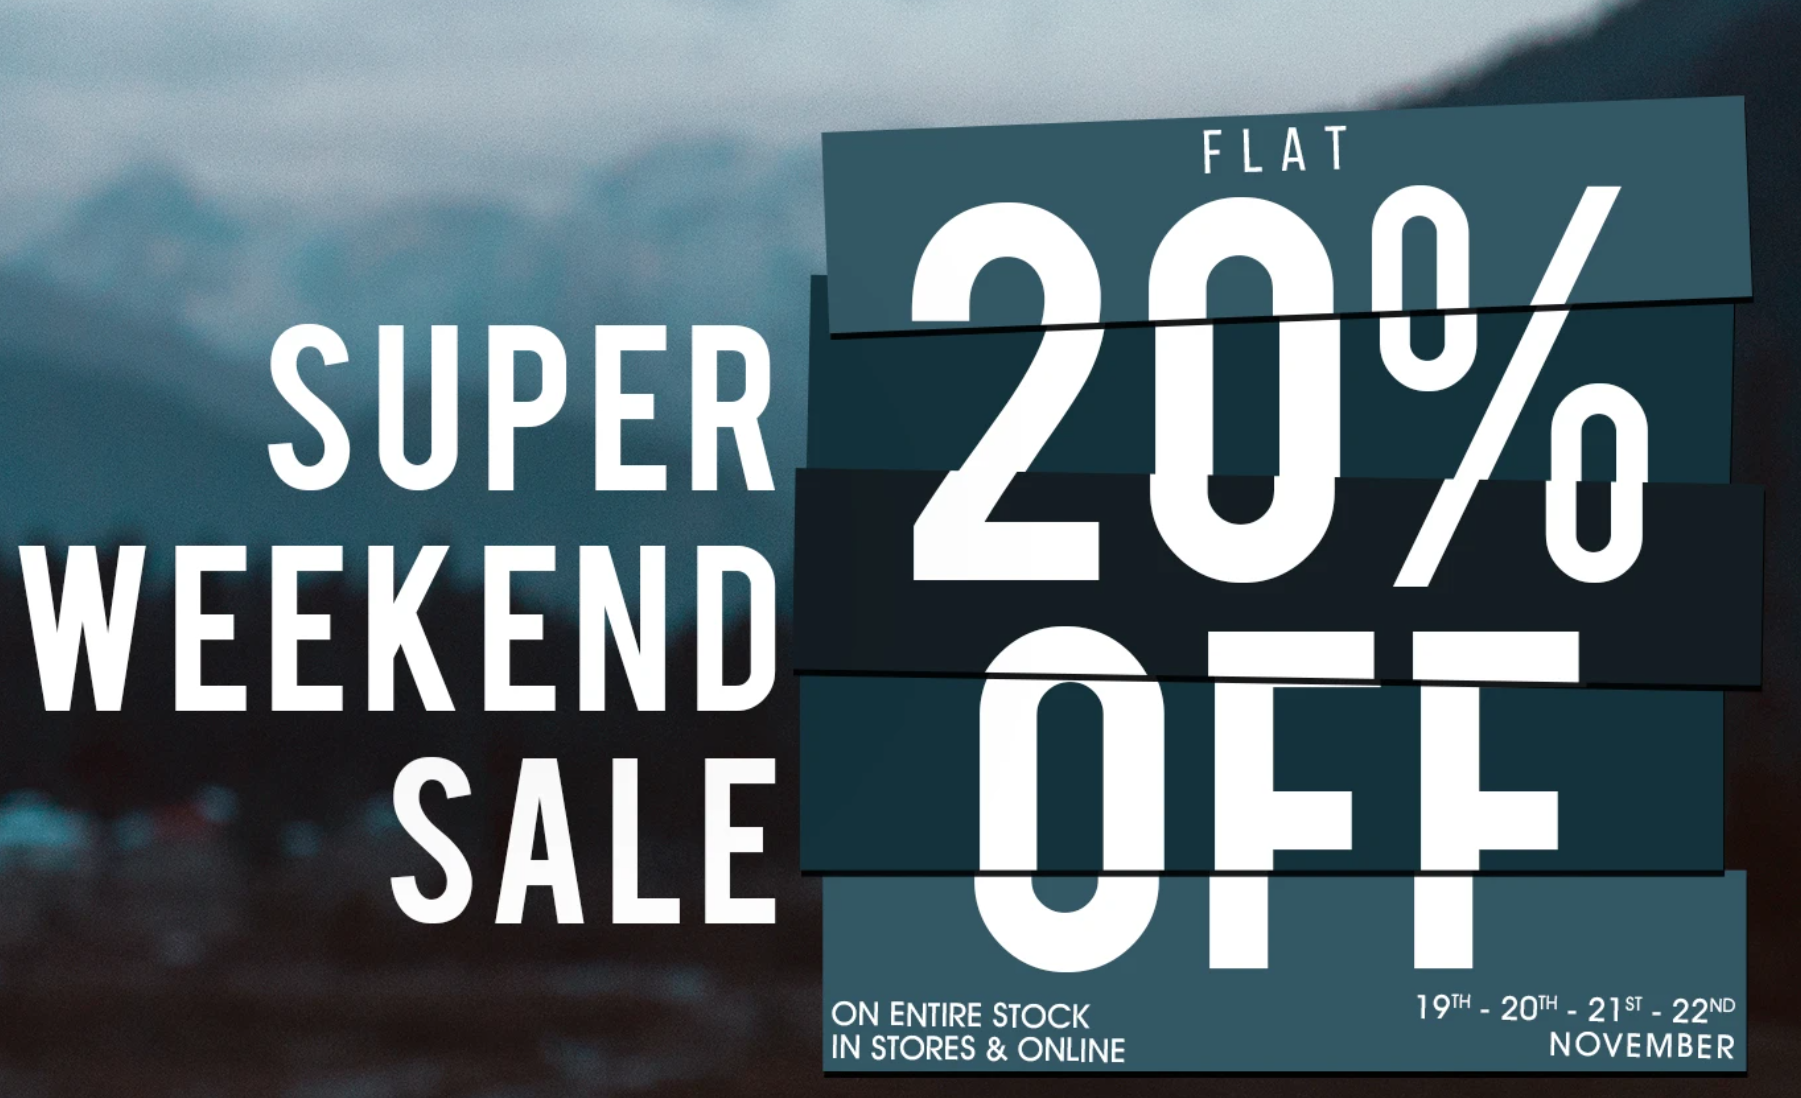 Charcoal - Super Weeked Sale